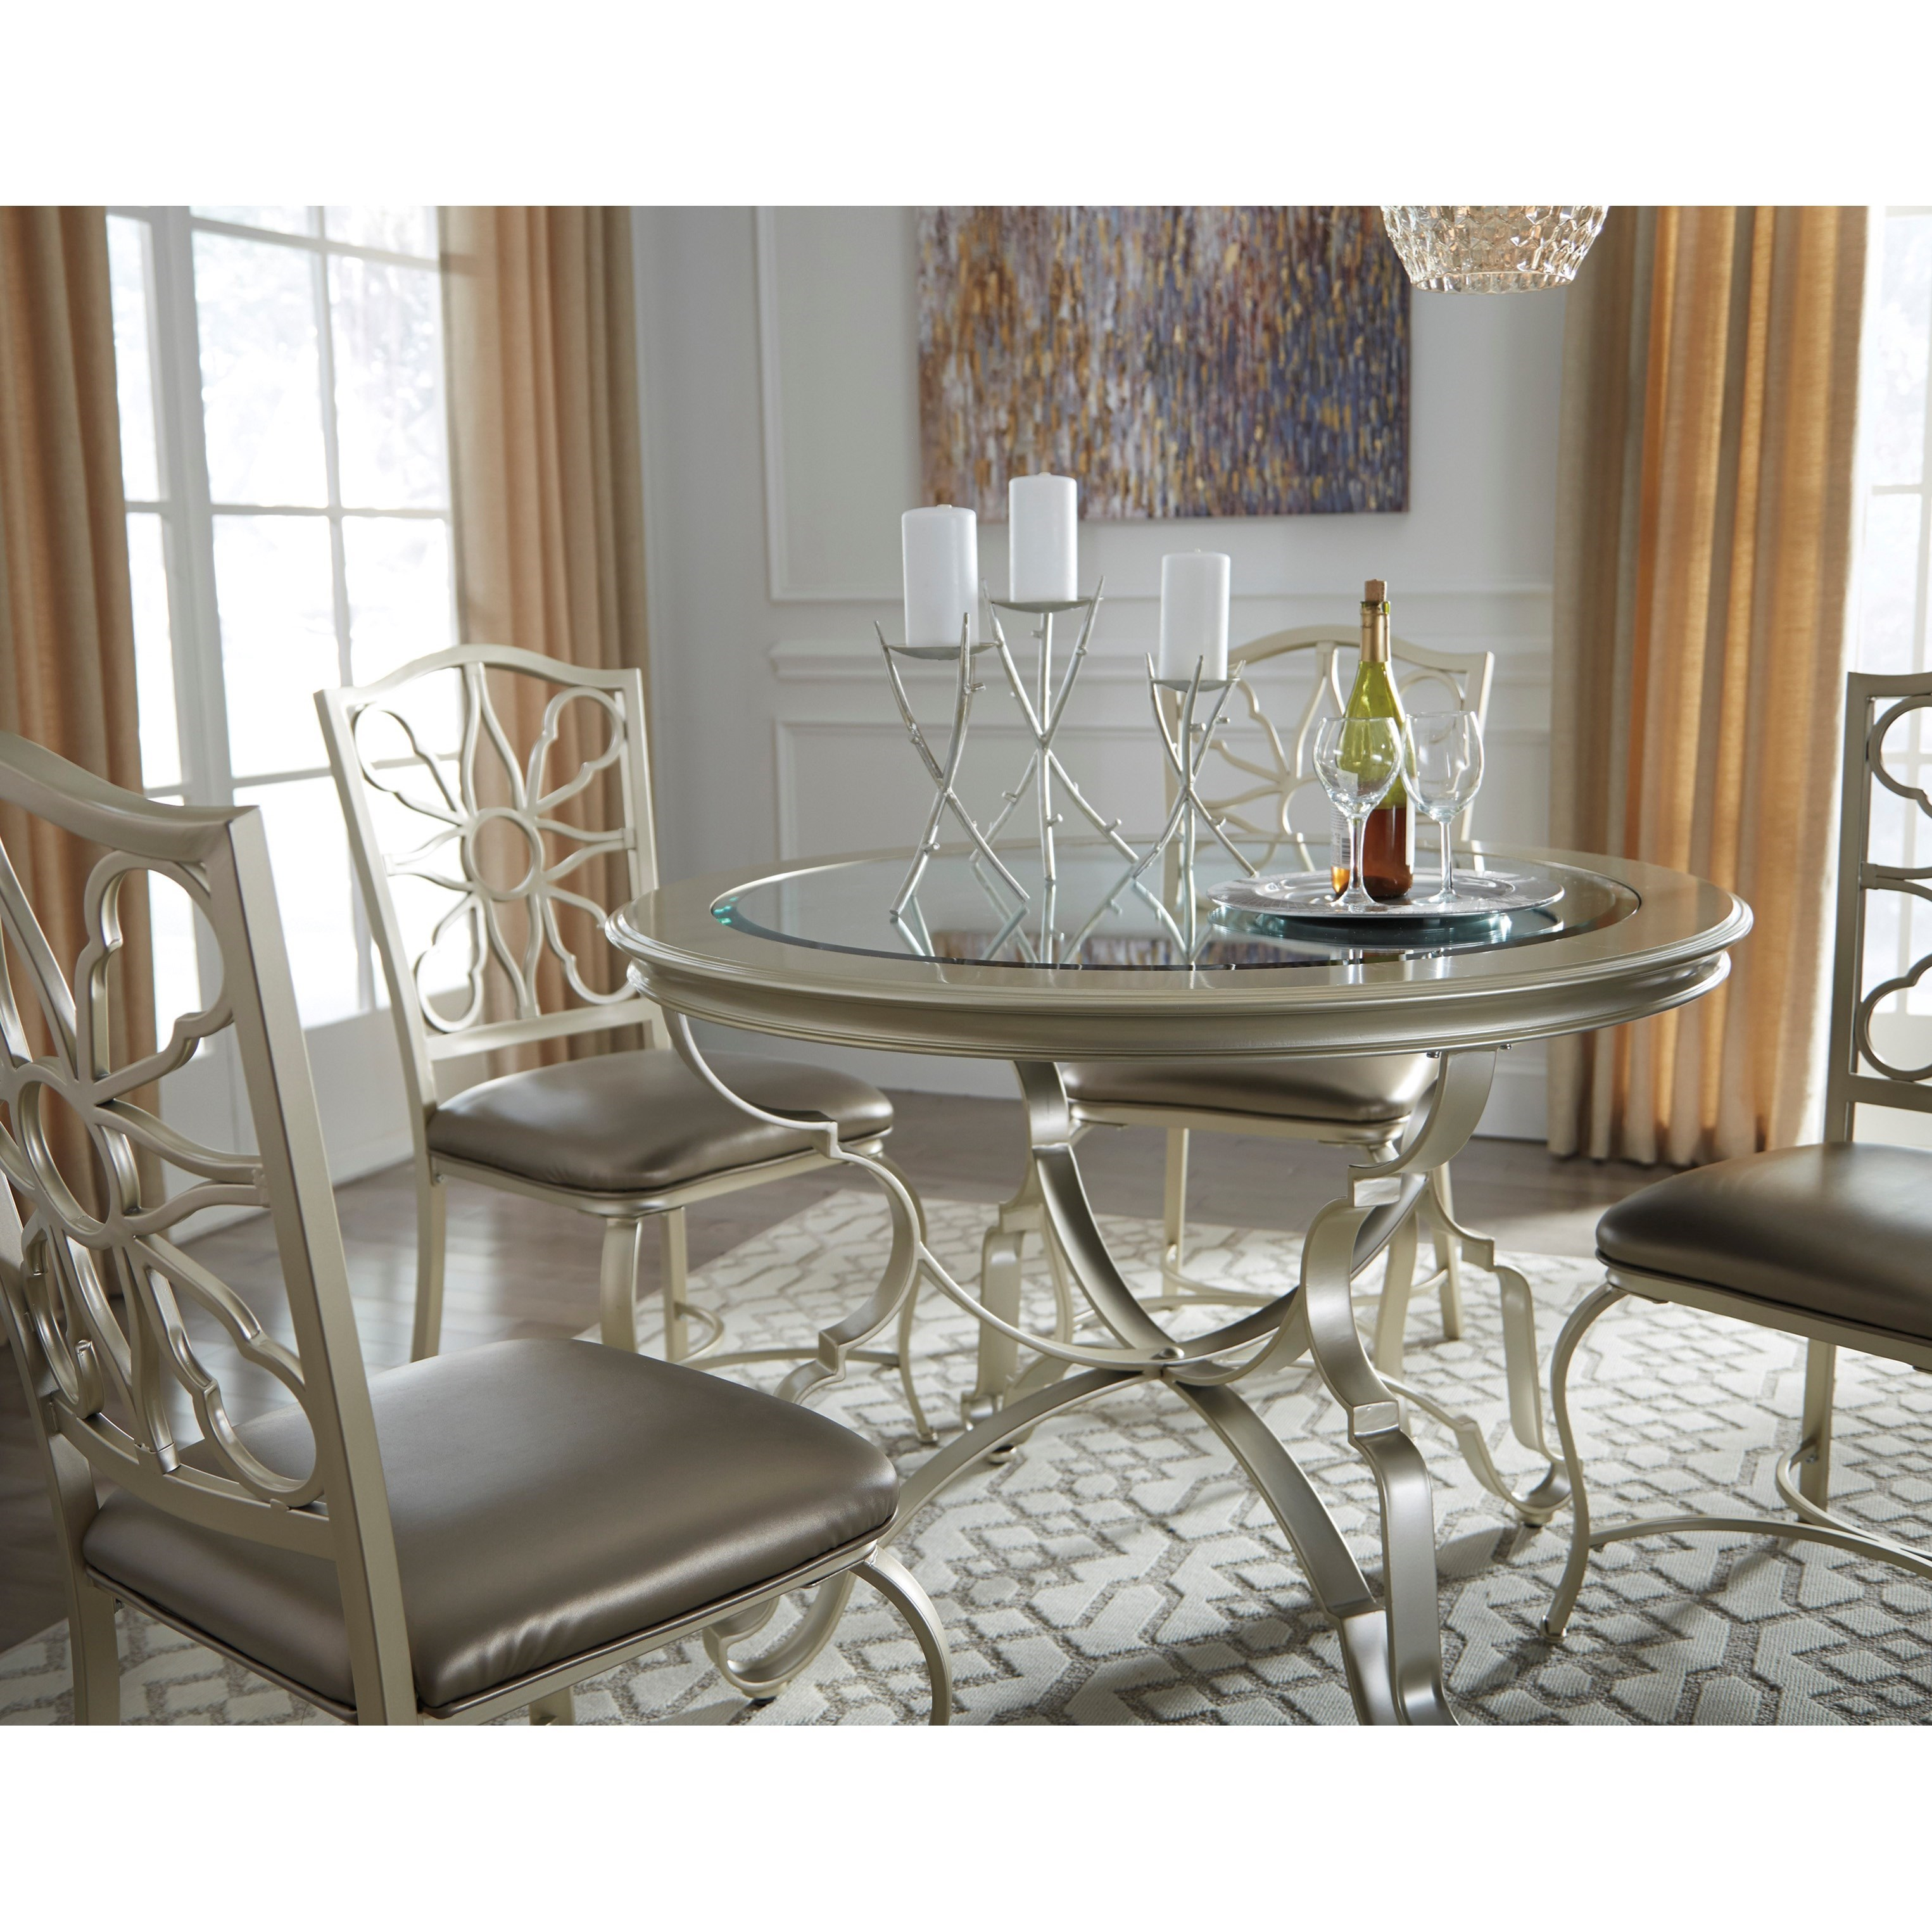 Silver finish round dining room table with inset glass top for Best dining room table finish